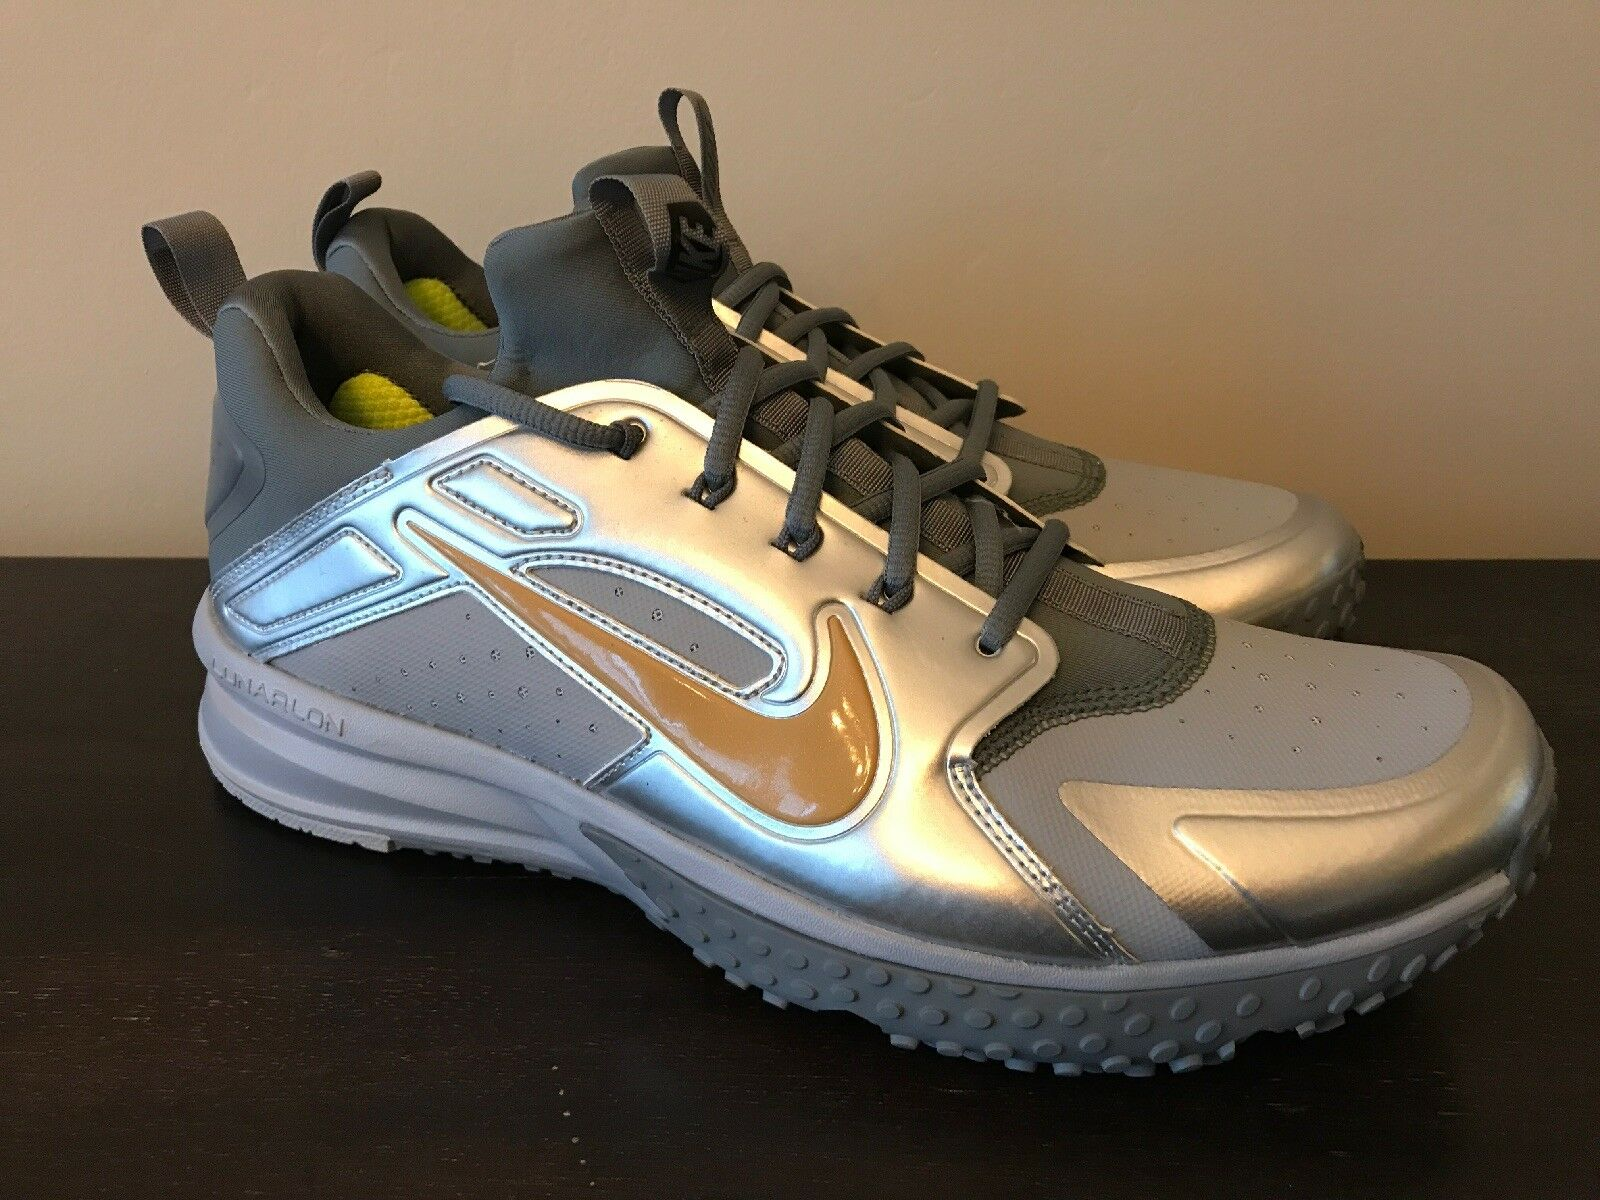 46b87cd9a Nike Men s Lunar Huarache Baseball Turf shoes Grey Grey Grey gold Size 11.5  923435-071